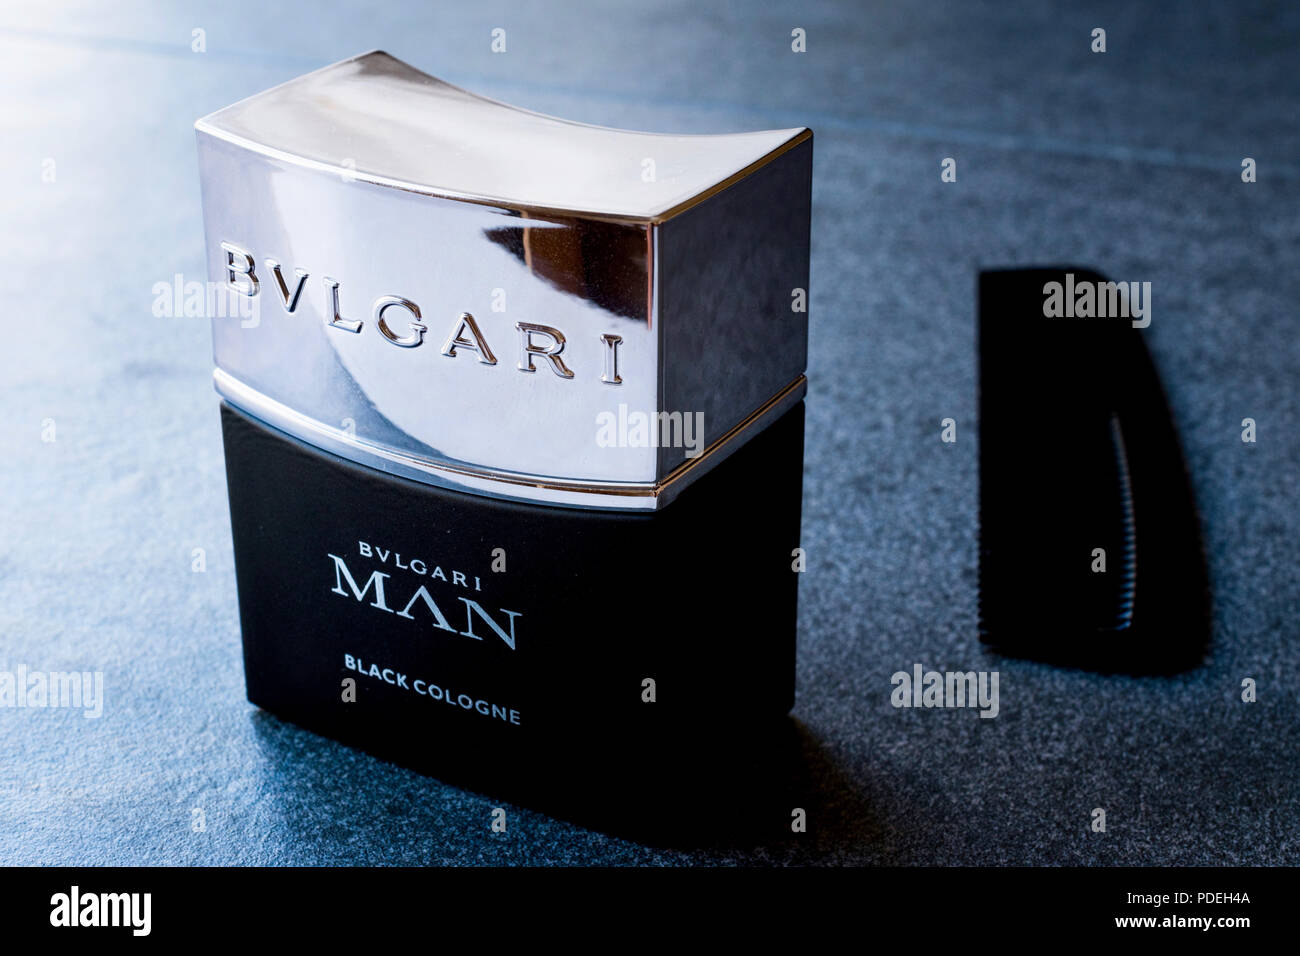 Istanbul, Turkey - February 23, 2018 Bvlgari Man Black Cologne 30ml / Parfume with Comb. Cosmetic Product. - Stock Image